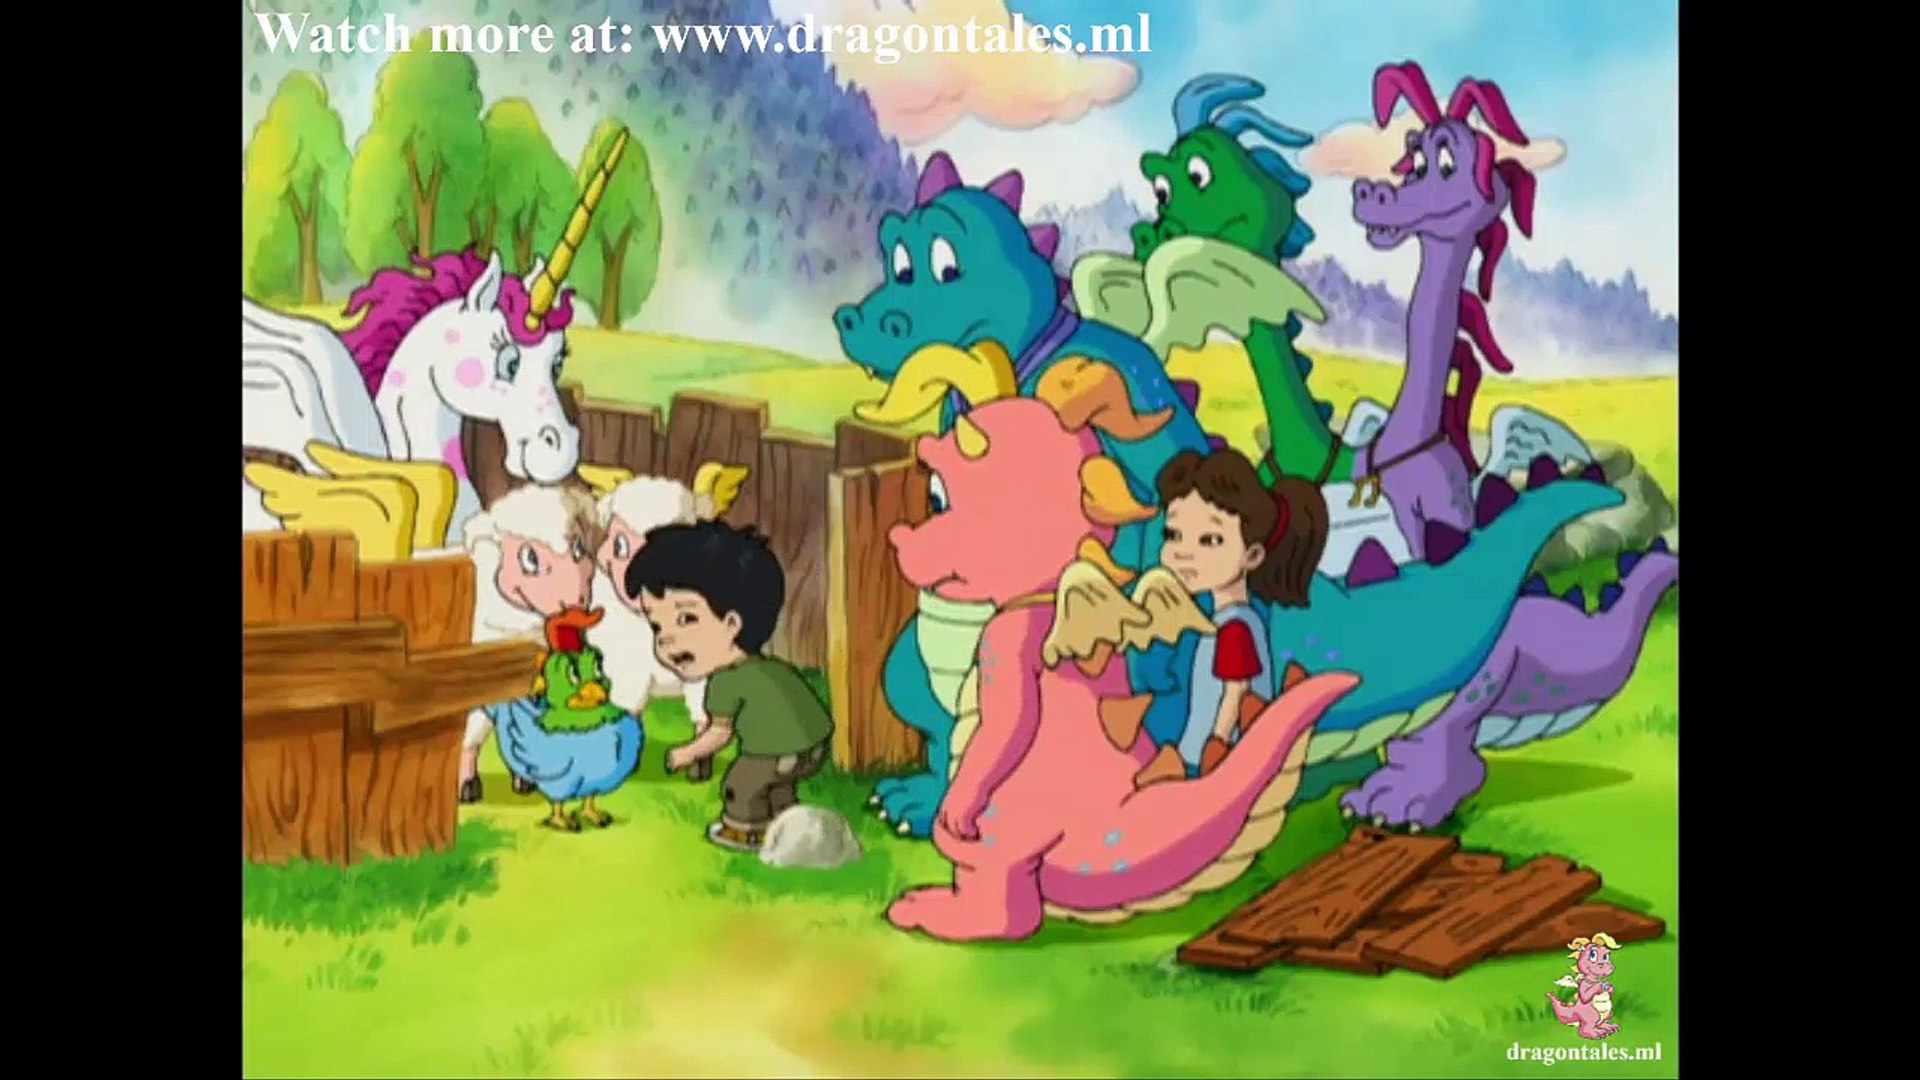 Dragon Tales S02e14 Sticky Situations Green Thumbs Video